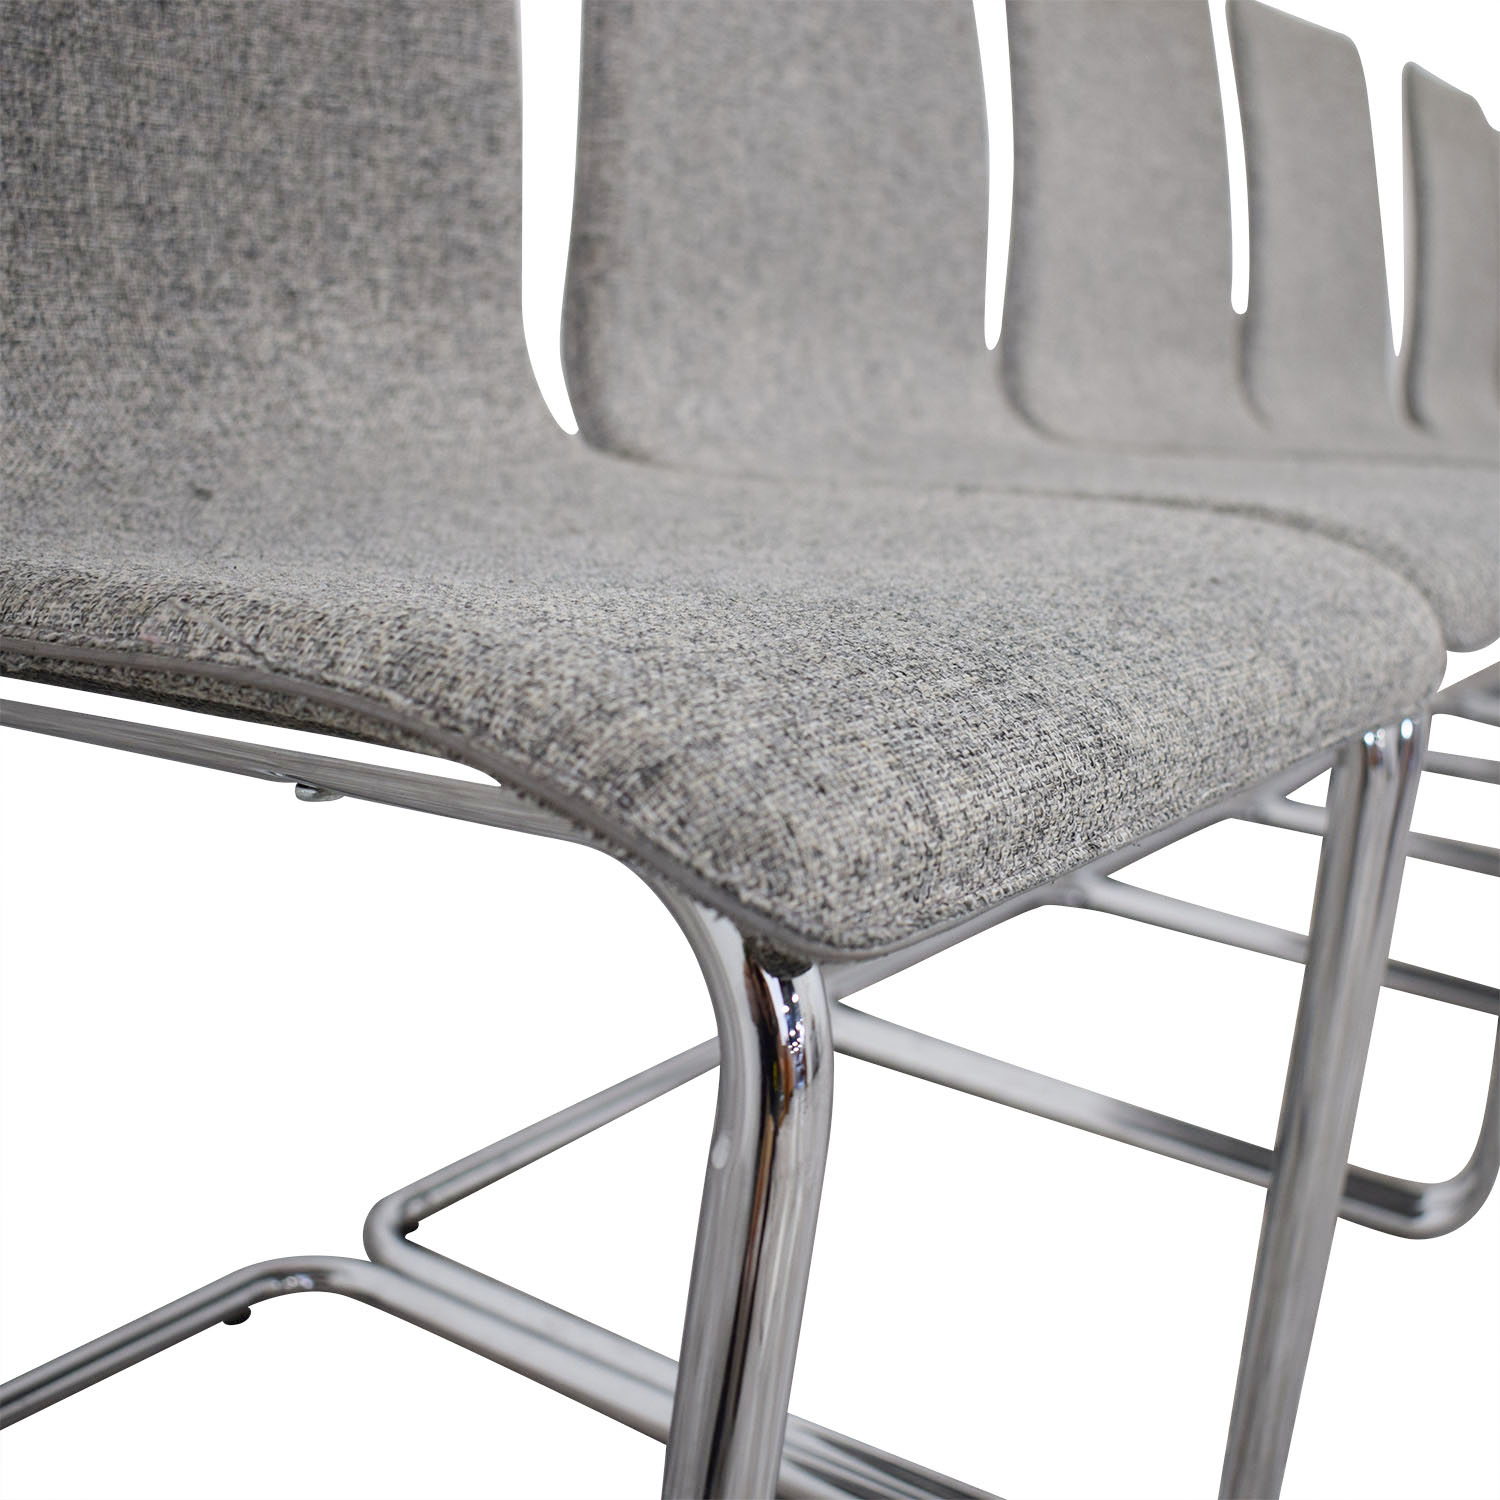 Charmant Shop CB2 Pony Grey Tweed Chairs CB2